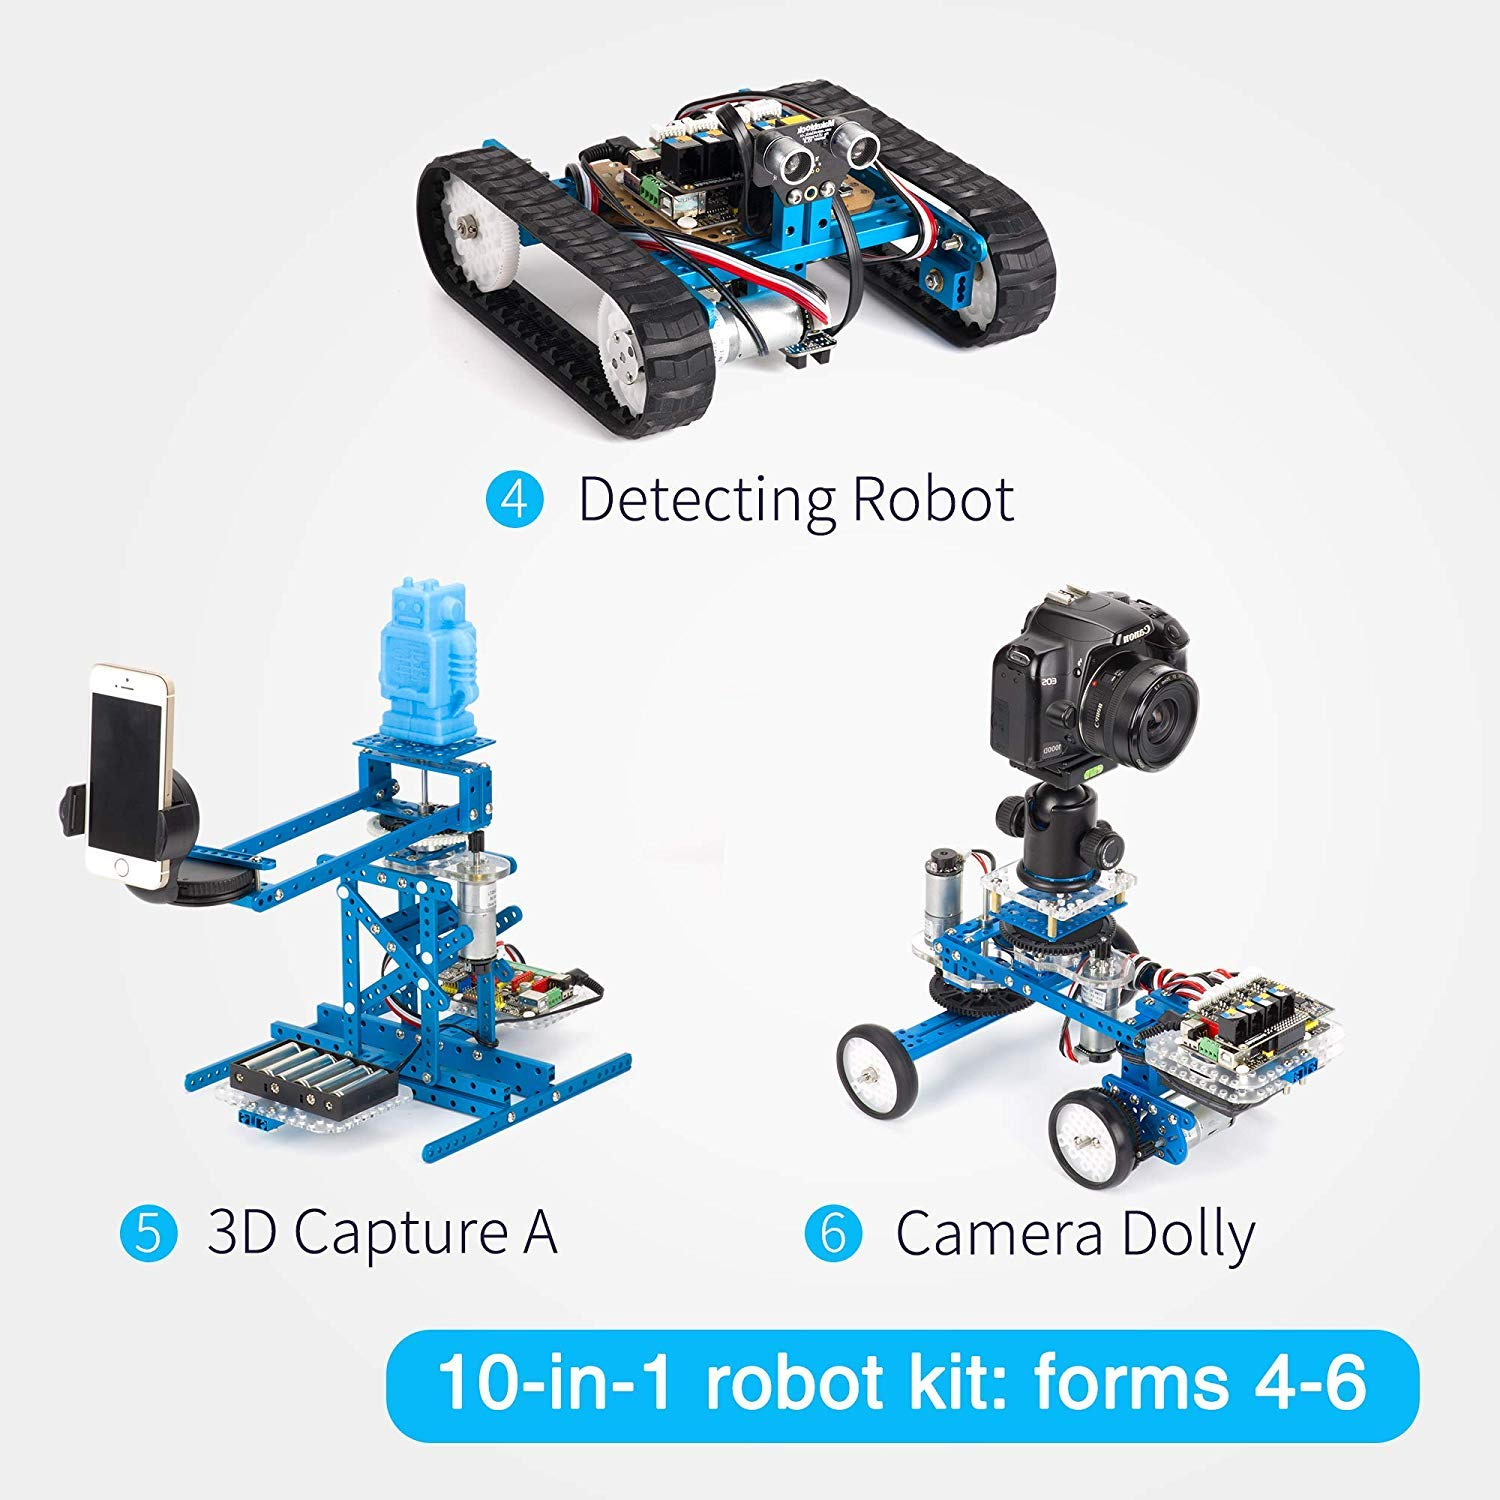 Makeblock DIY Ultimate Robot Kit - Premium Quality - 10-in-1 Robot - STEM Education - Arduino - Scratch 2.0 - Programmable Robot Kit for Kids to Learn Coding, Robotics and Electronics